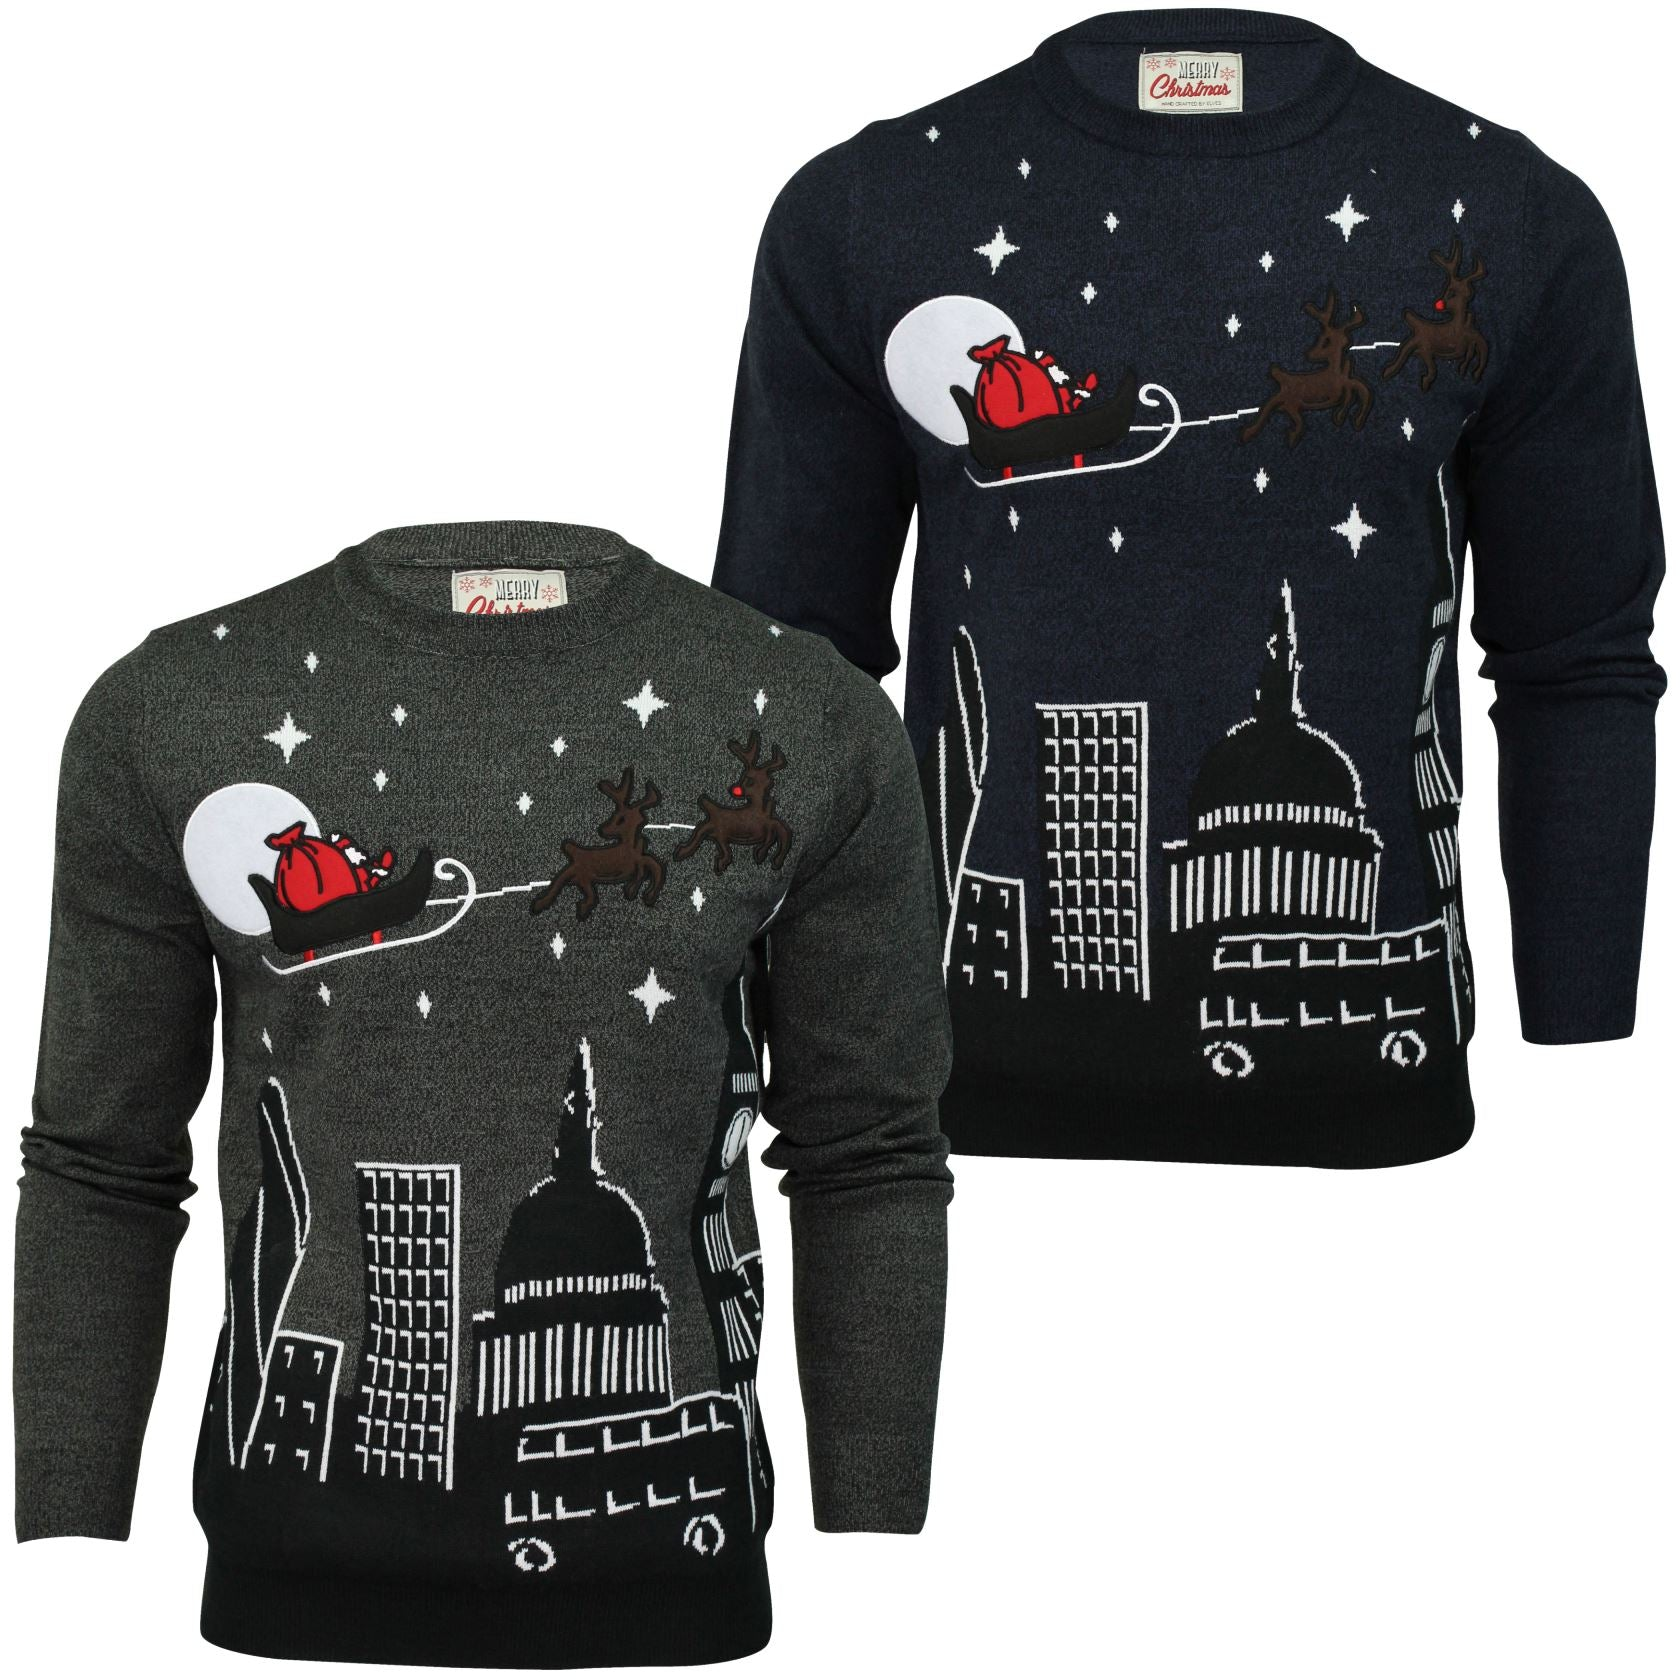 Mens Christmas/ Xmas Jumper 'Night Sky' Santa Sleigh Over London-Main Image